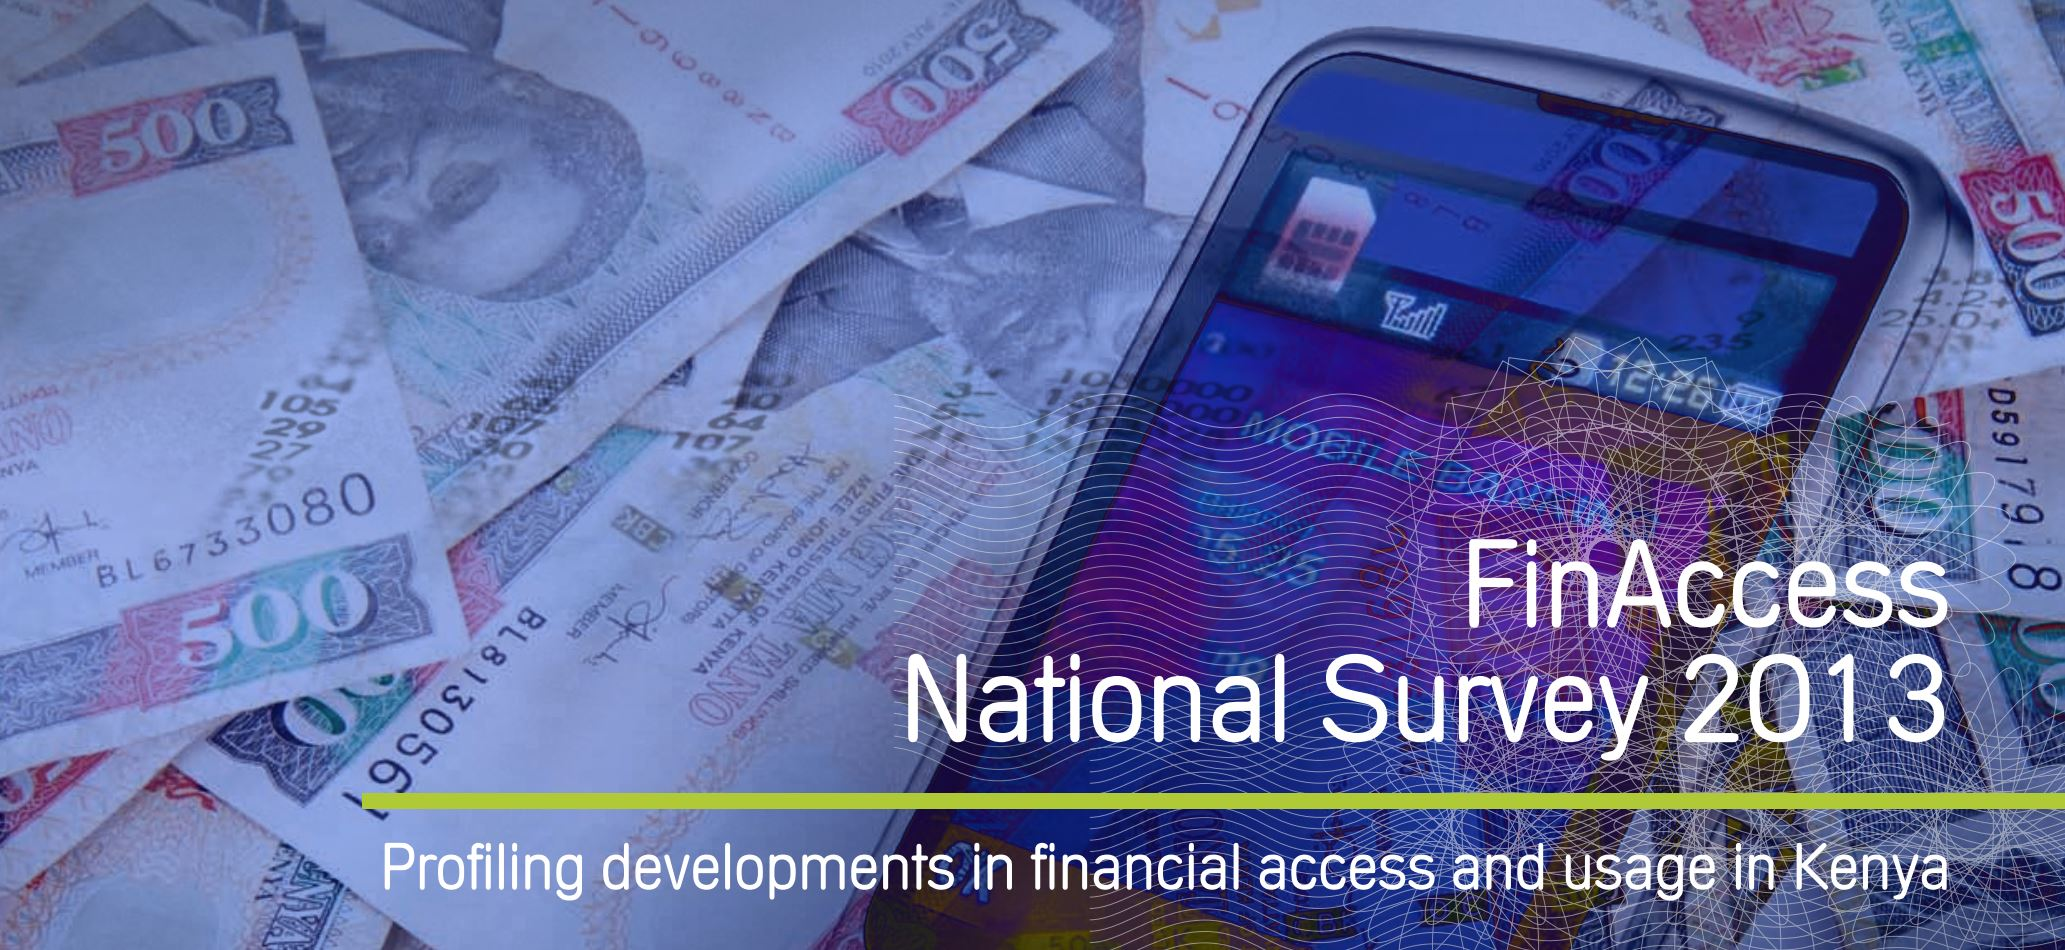 FinAccess National Survey 2013: Profiling developments in financial access and usage in Kenya